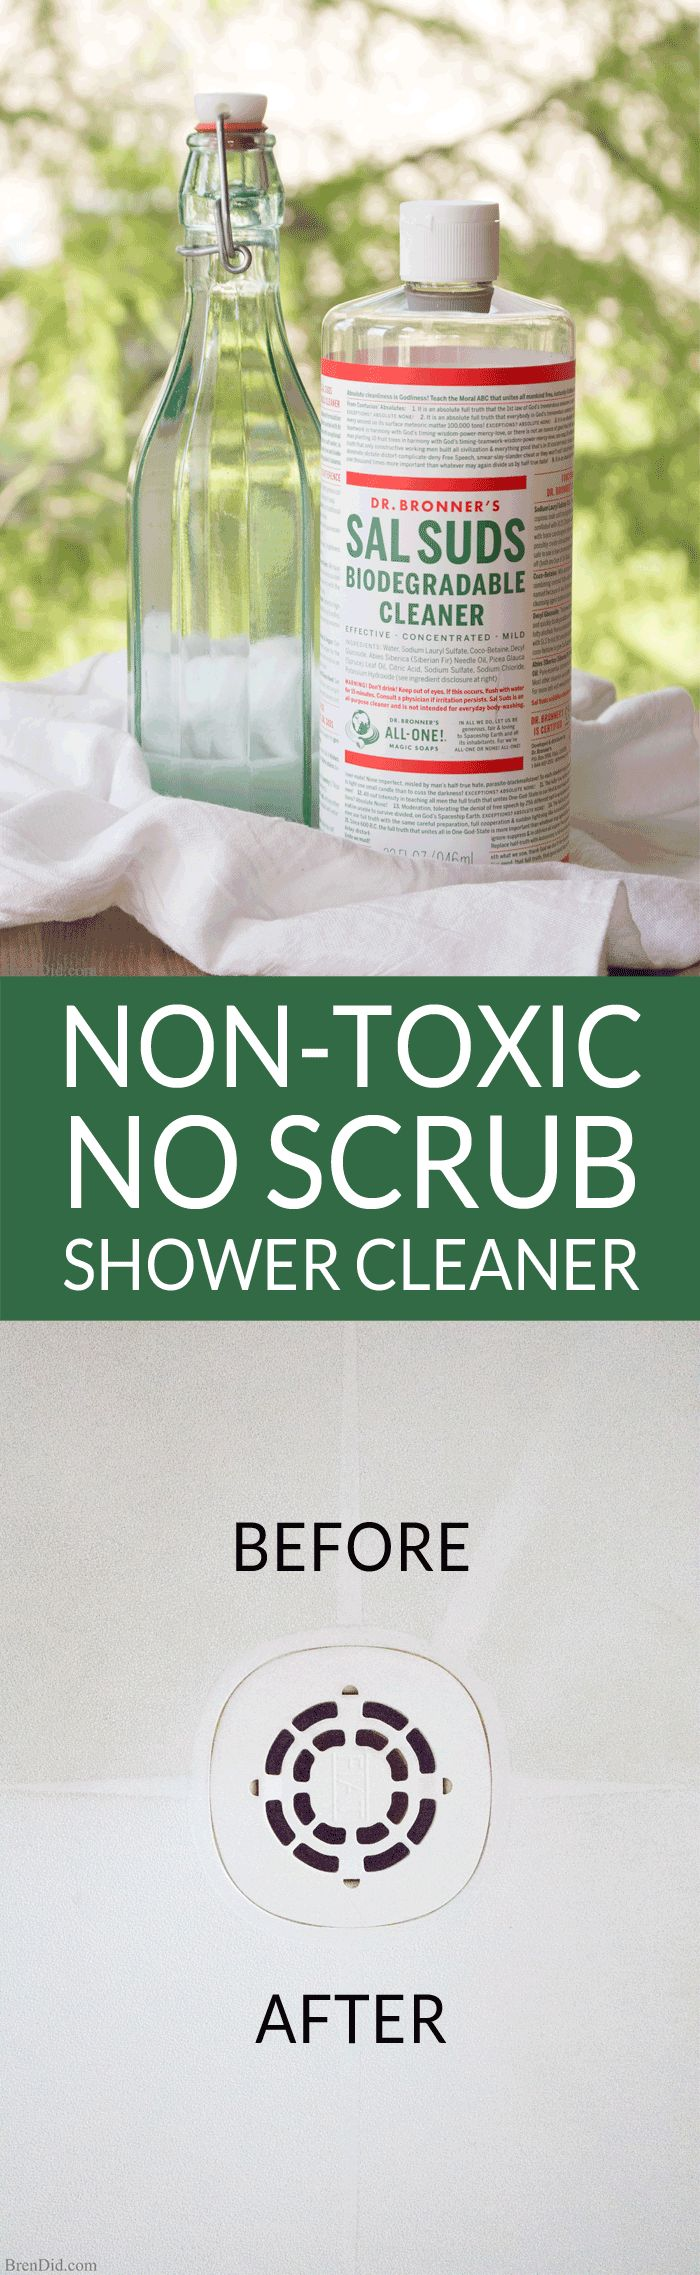 """Cleaning the bathroom is no fun. Non-Toxic No Scrub Shower Cleaner magically melts soap scum, tub rings, and shower buildup with only 2 natural ingredients. Use it to clean showers, tubs, sinks and toilets. It rates an """"A"""" on the Environmental Working Group (EWG) scale, so you can feel good about using it in your home."""